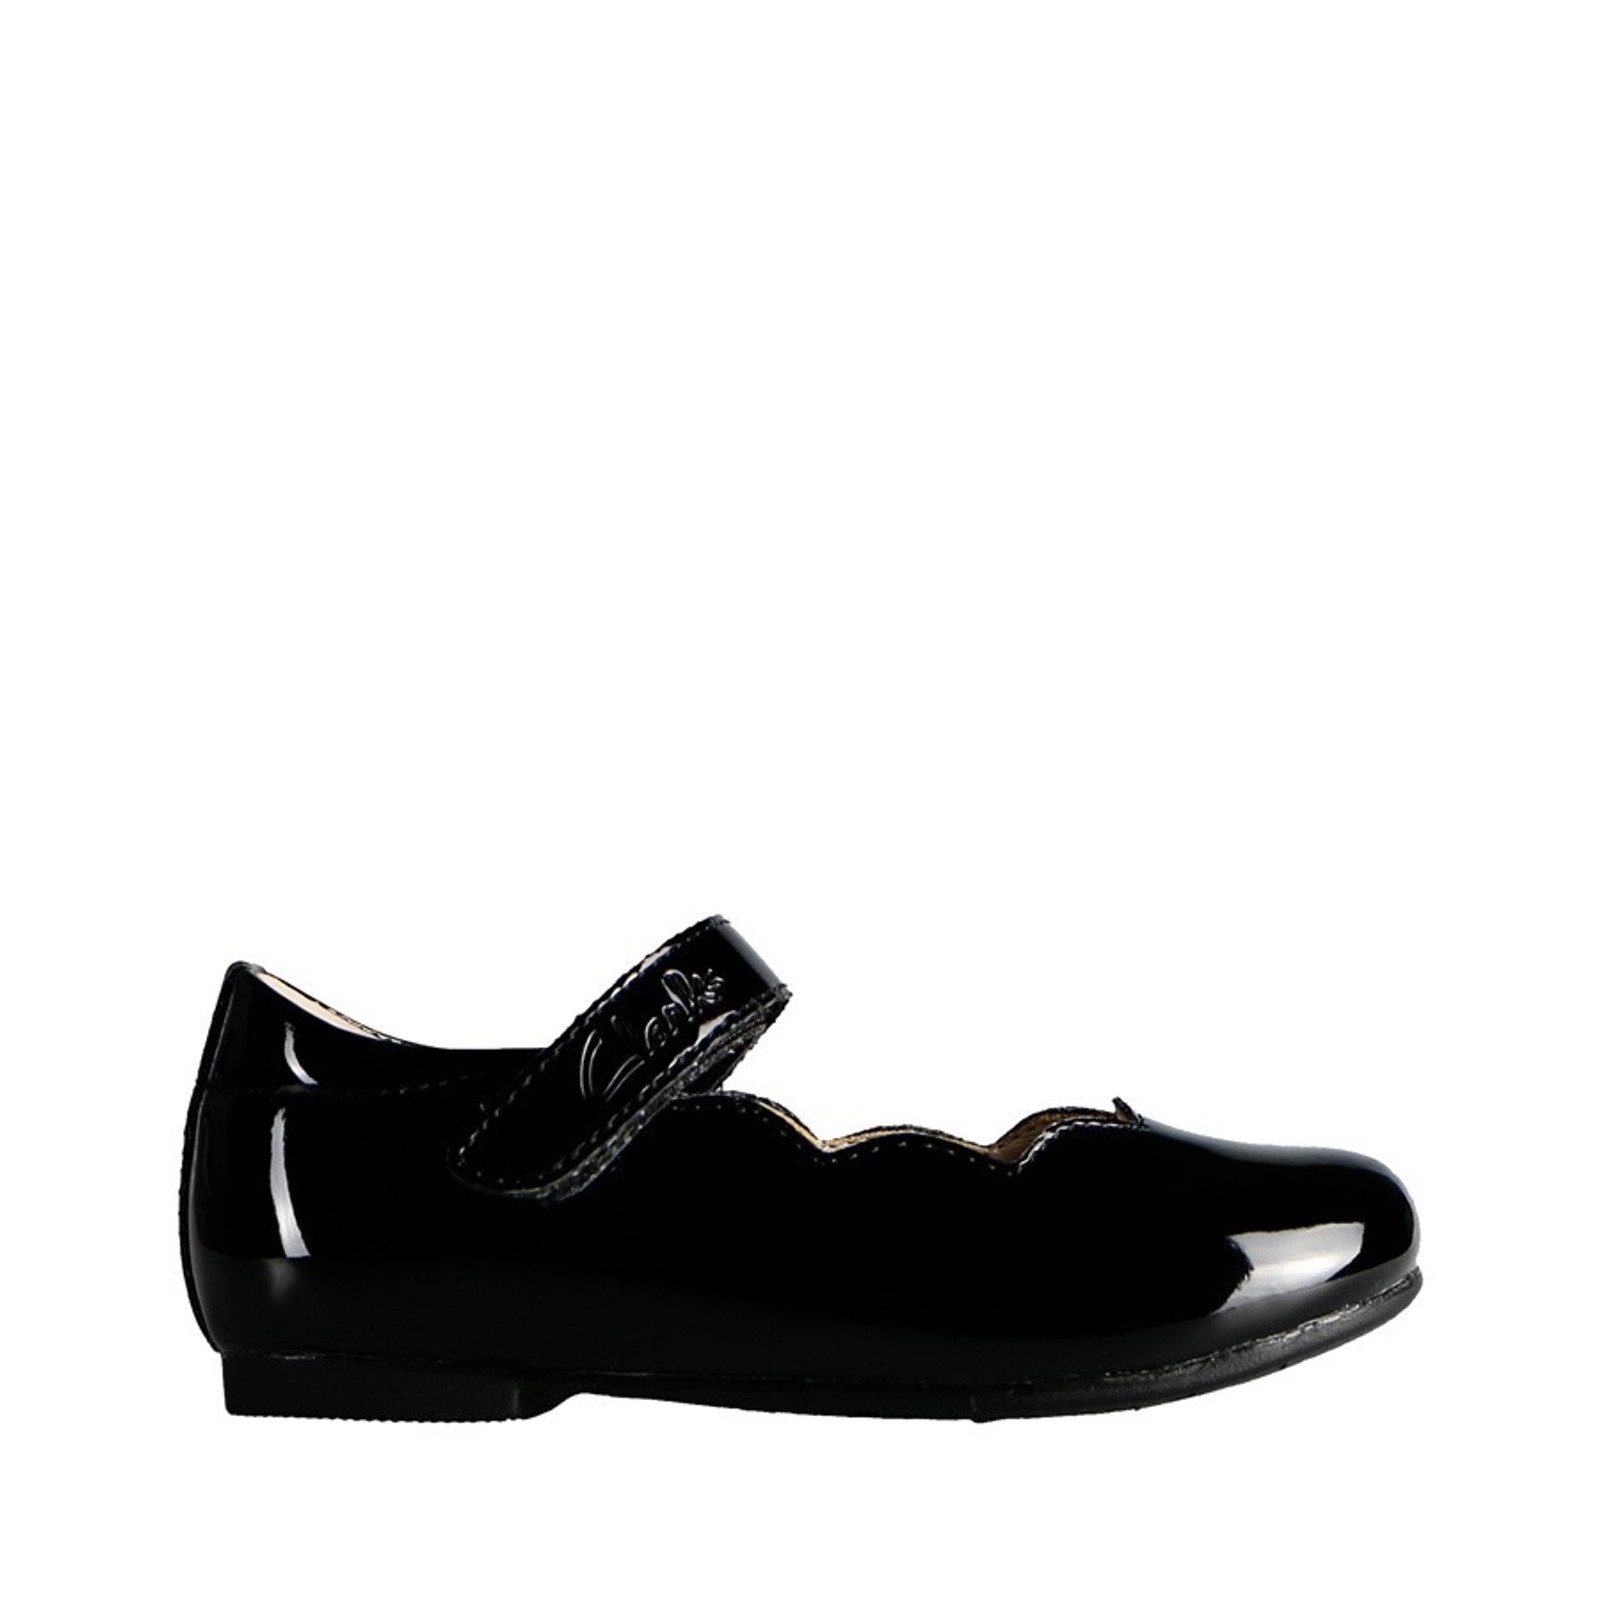 Clarks Girls AUDREY JUNIOR Black Patent